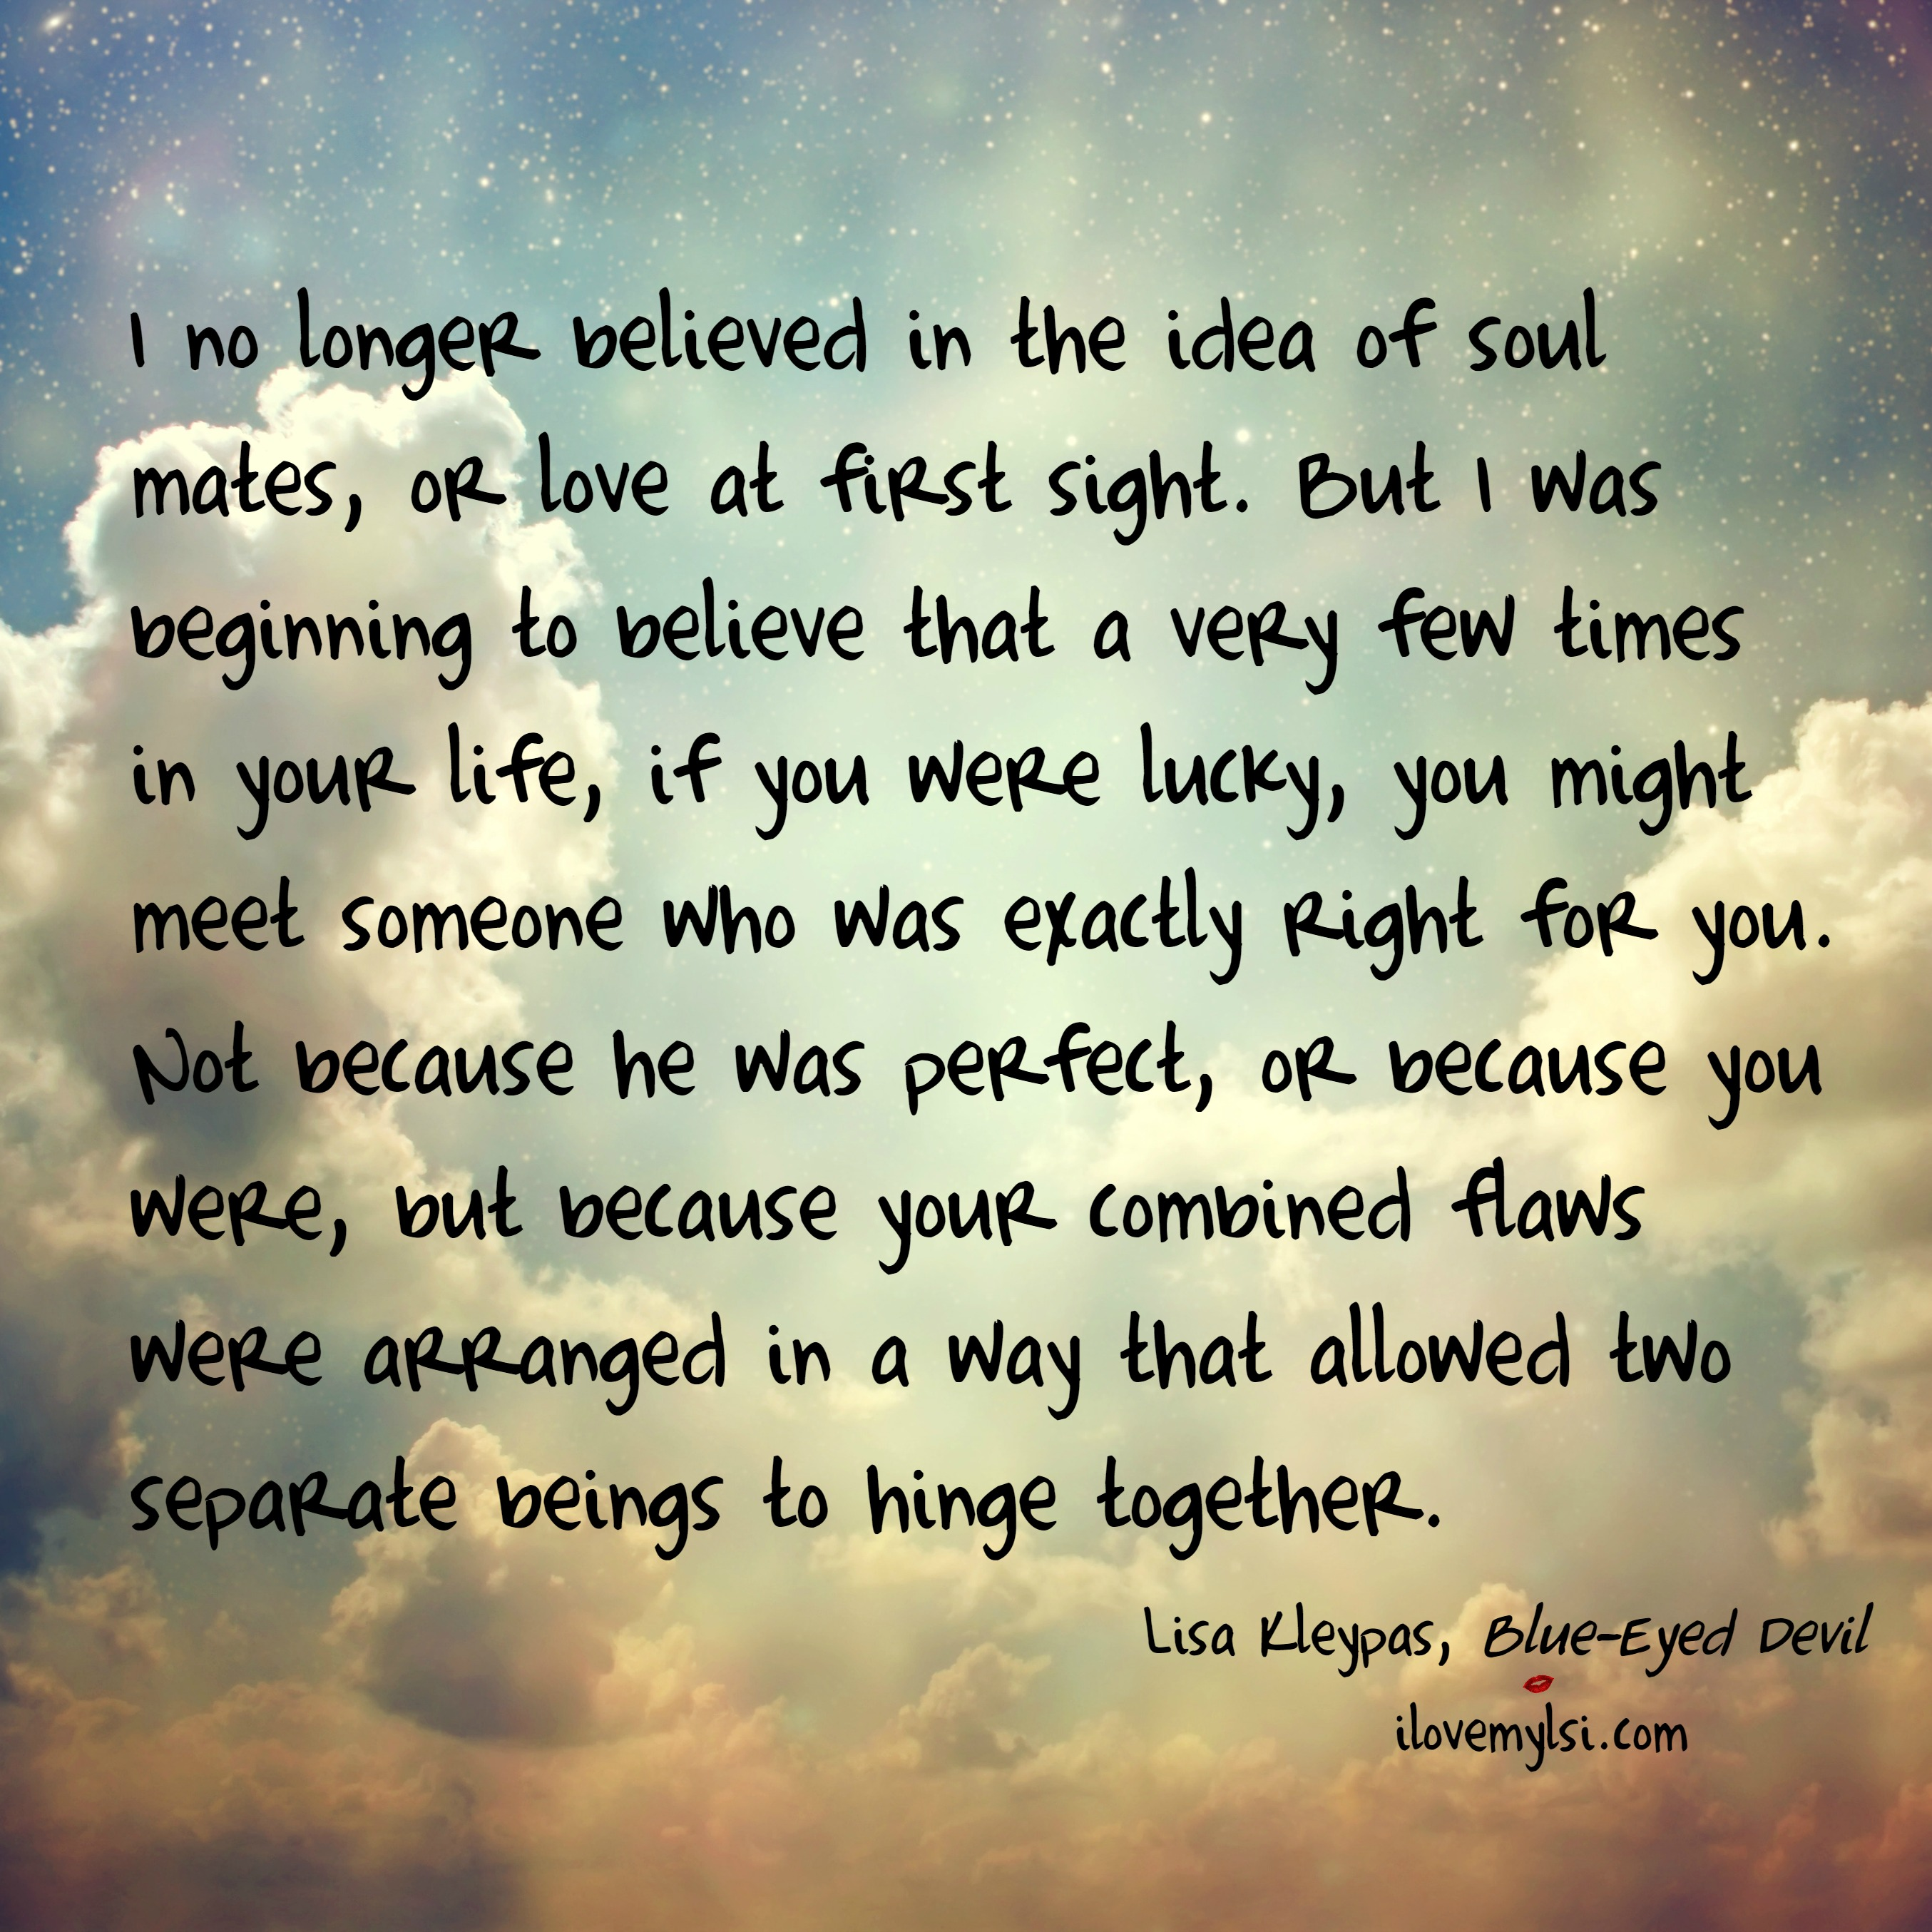 I no longer believed in the idea of soul mates - I Love My LSI